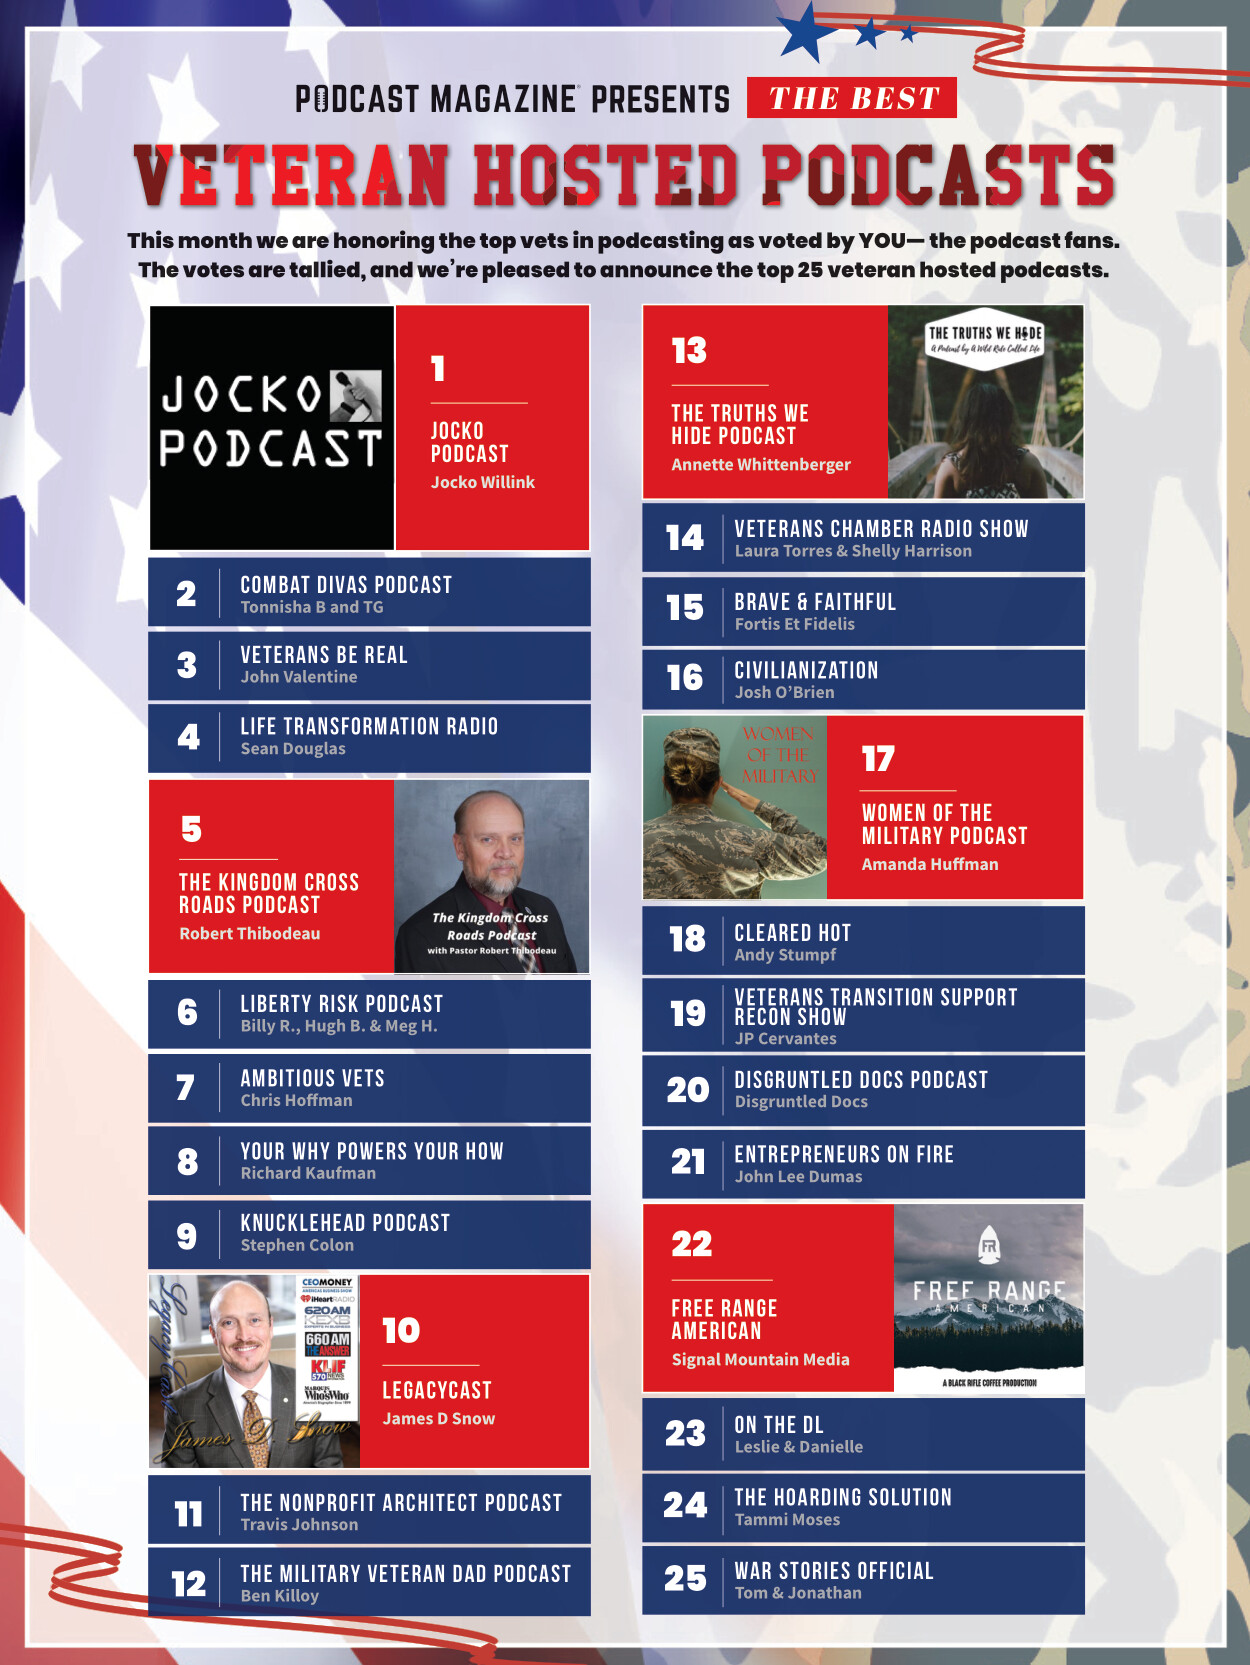 Best Veteran Hosted Podcasts